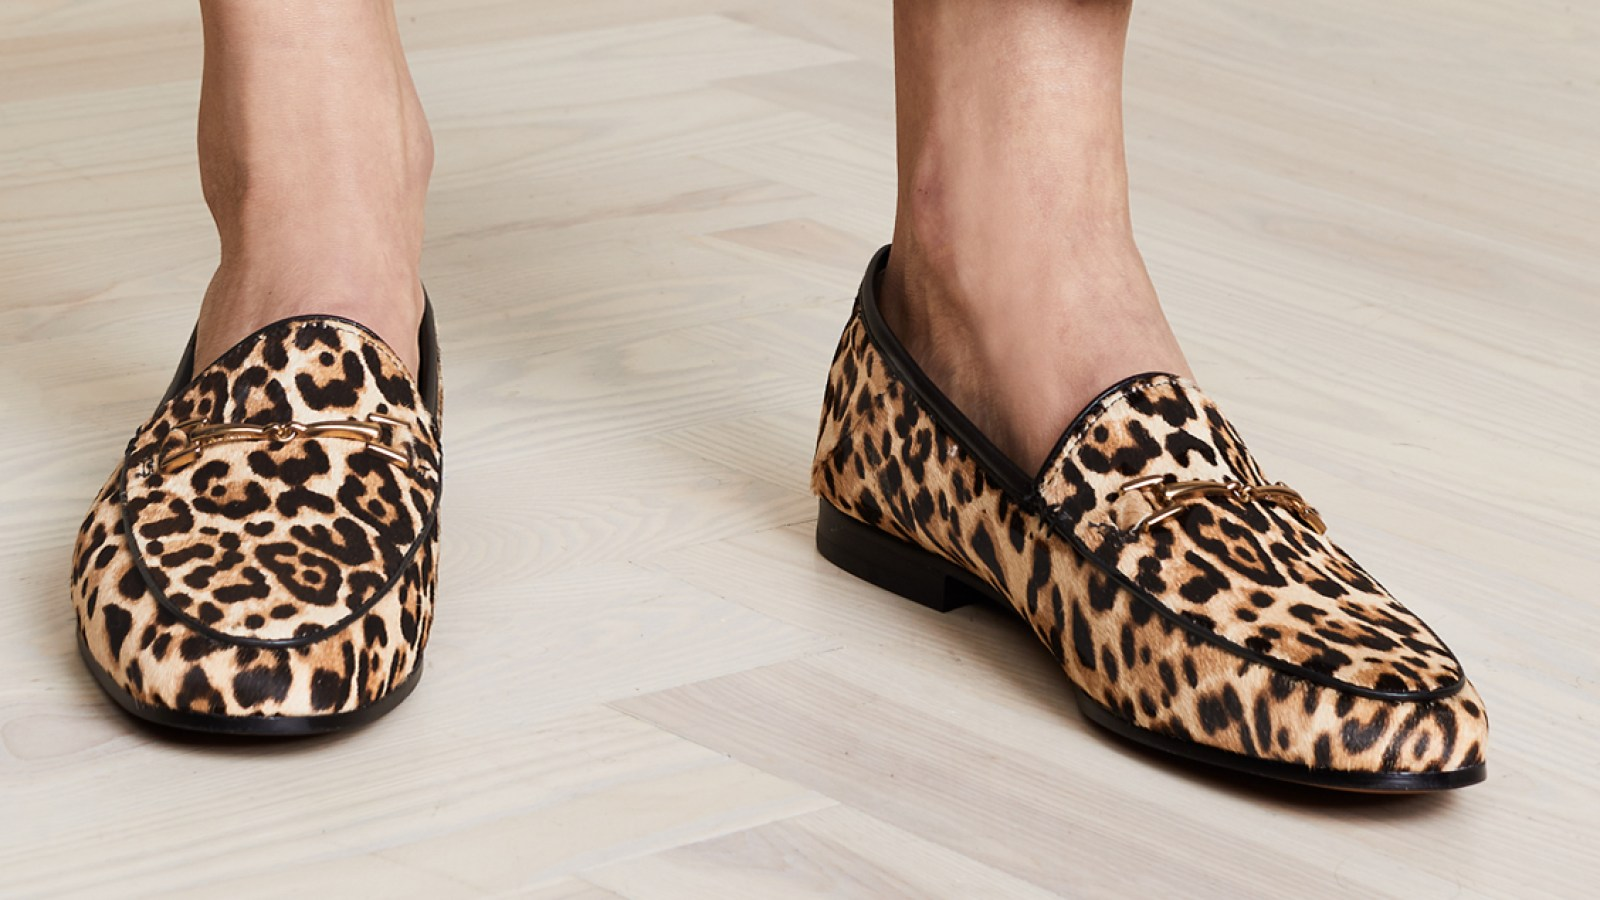 d4067f1a035 We re Taking a Stylish Walk on the Wild Side With These Leopard Loafers. By  Marquaysa Battle. sam edelman flats